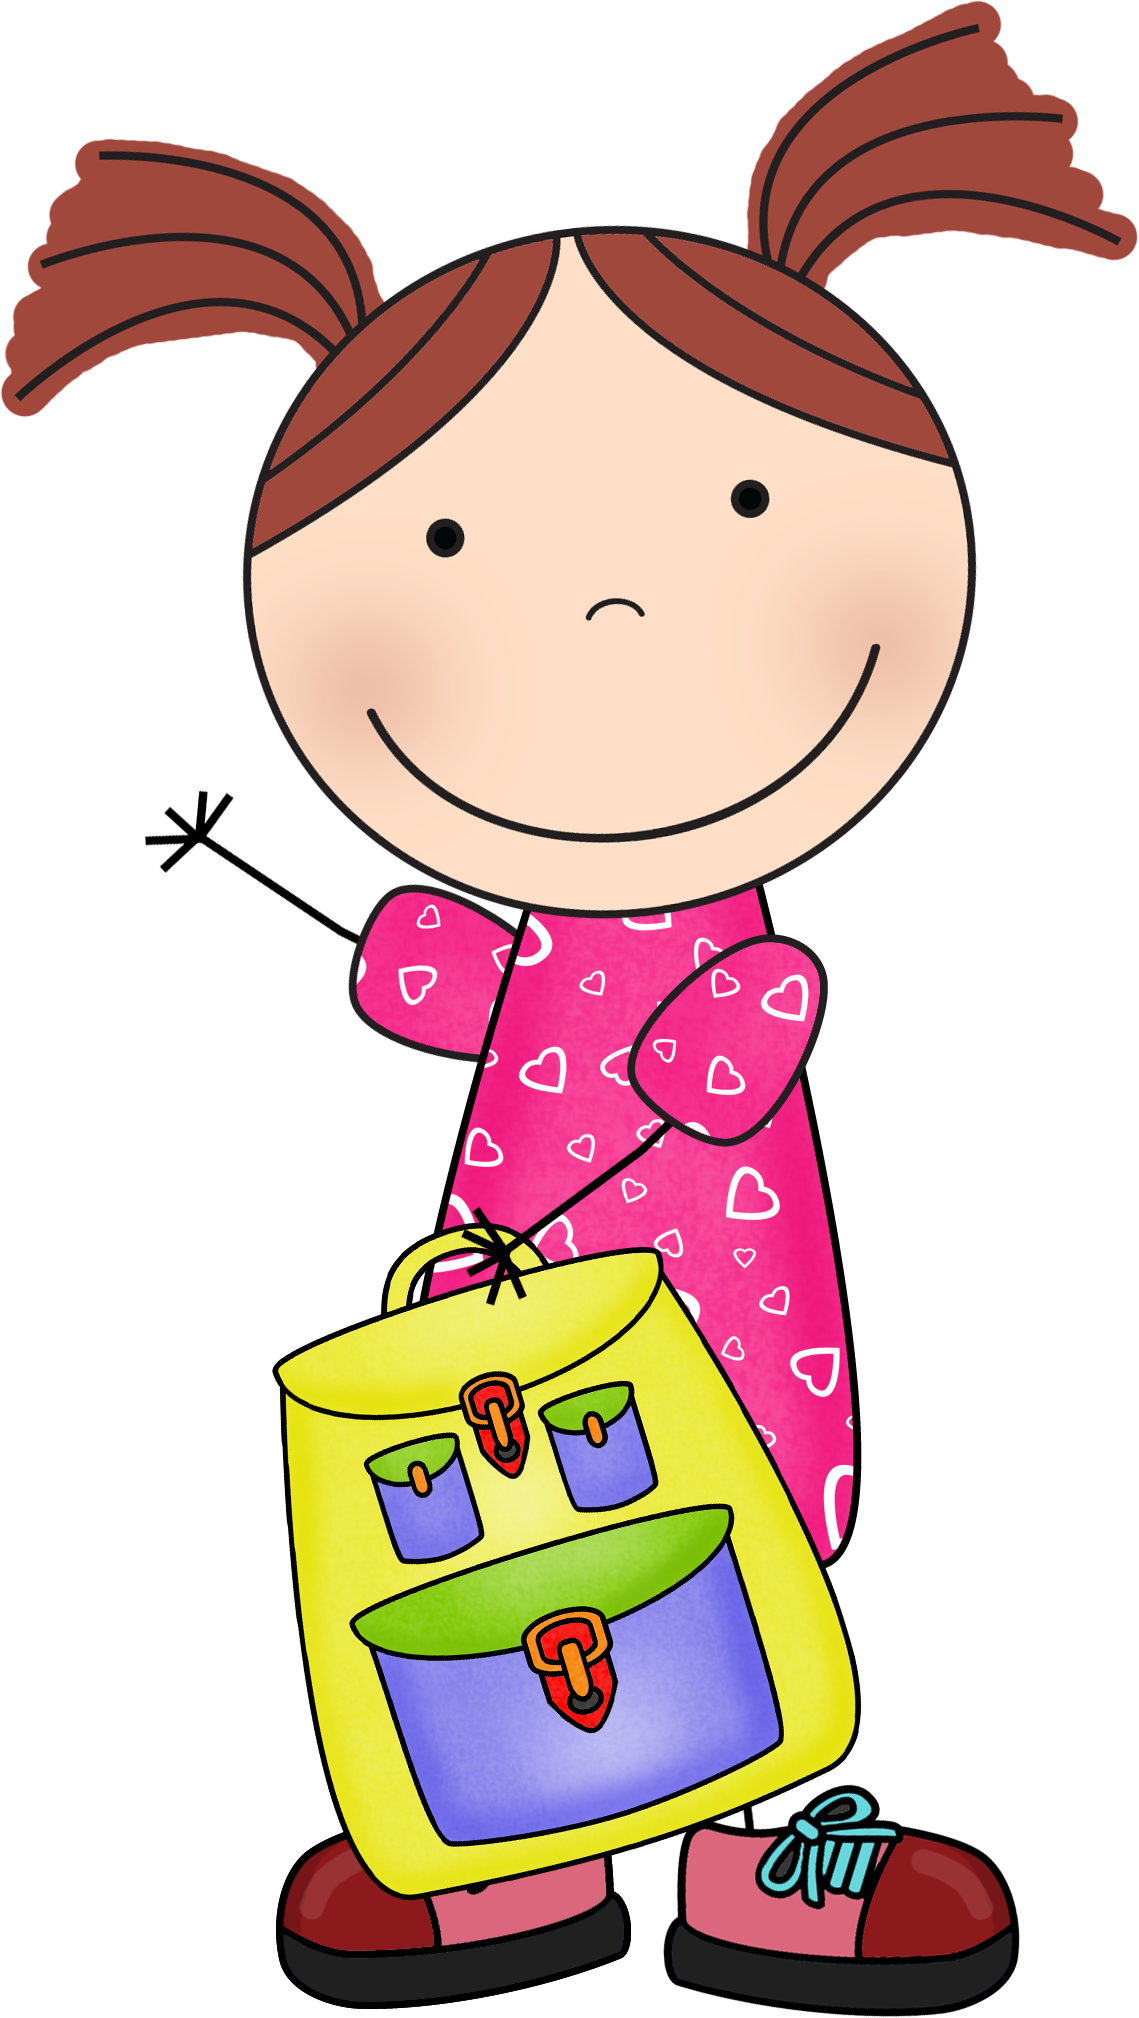 Backtoschool susie png school. Writer clipart stick figure